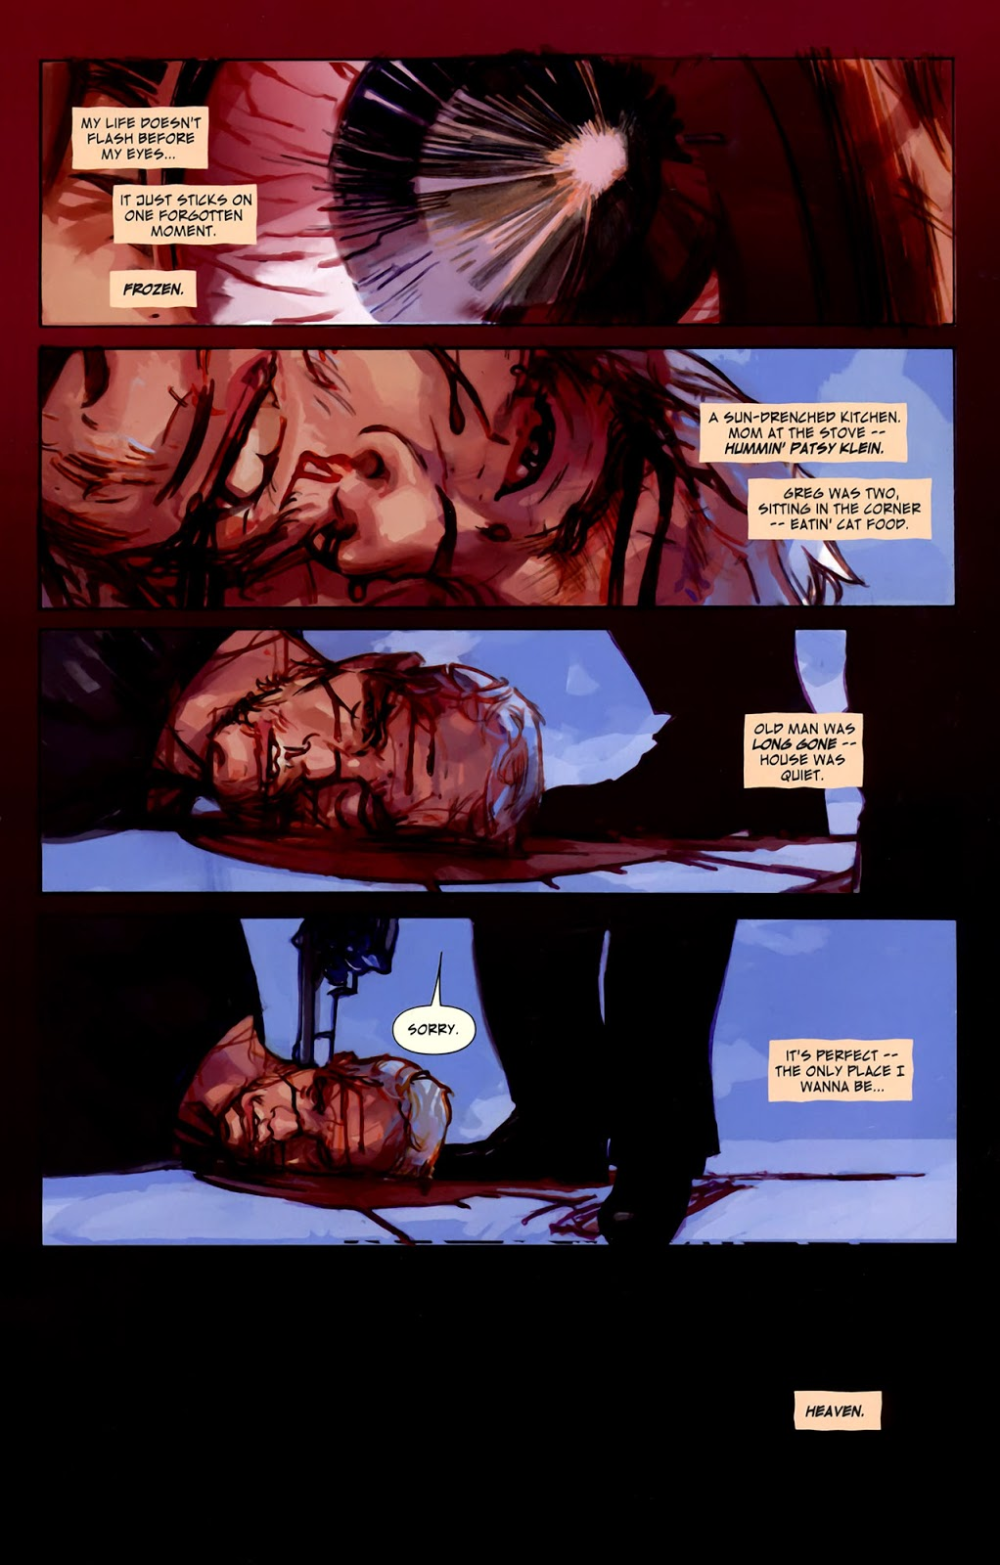 The Last Days Of American Crime Issue 1 Read The Last Days Of American Crime Issue 1 Comic Online In High Quality Comic Layout American Crime Graphic Novel